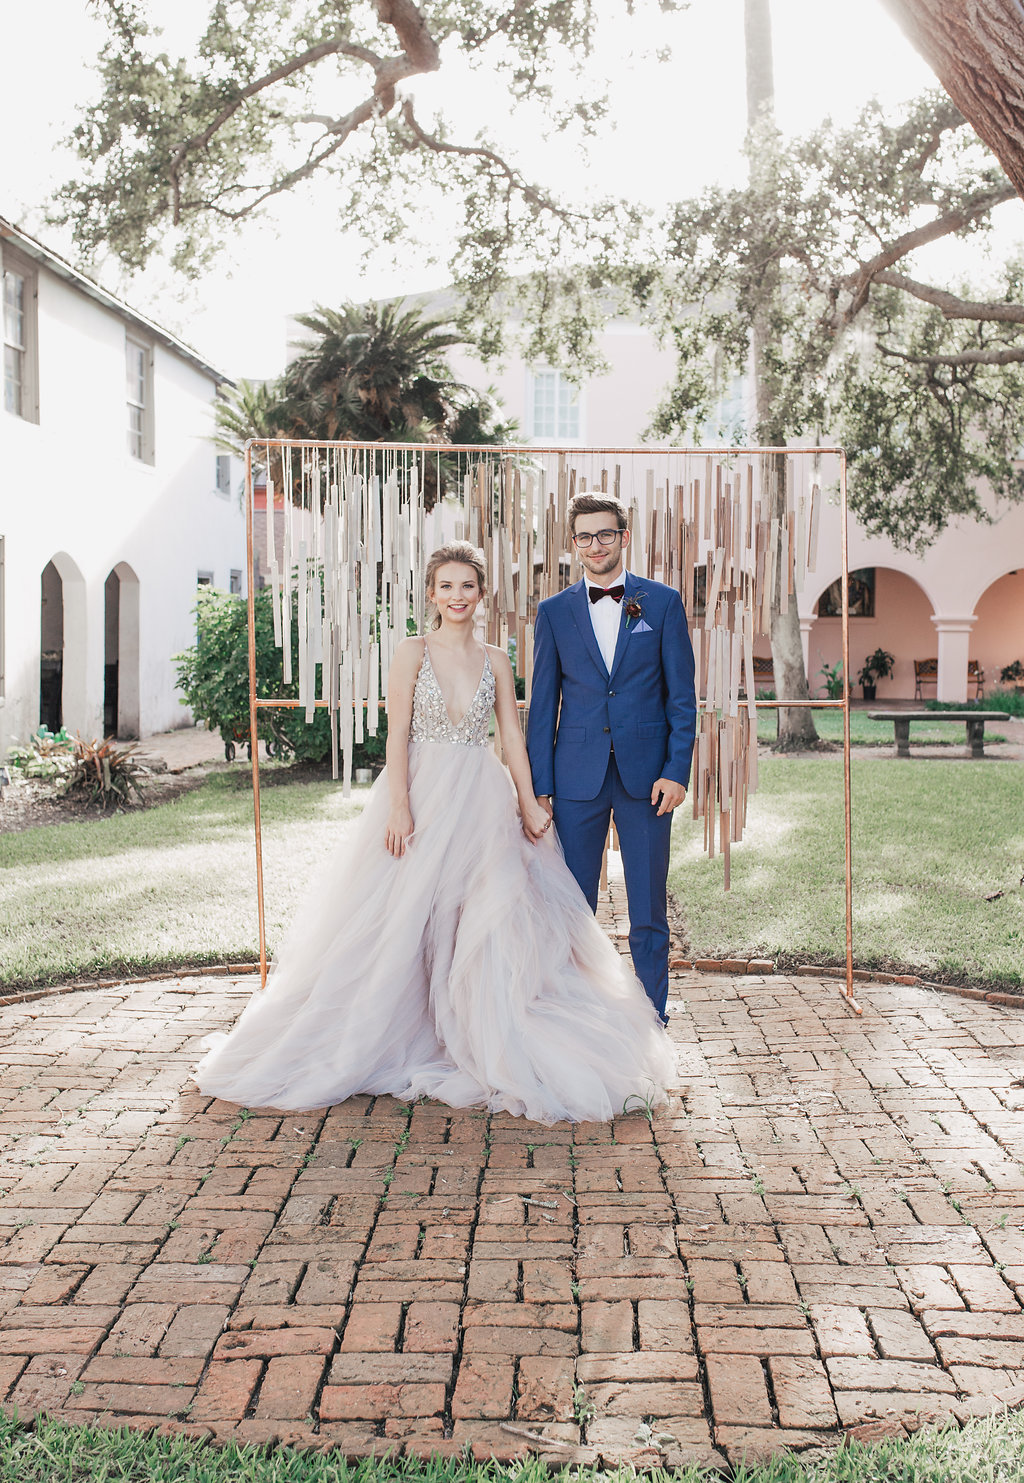 Jewel Toned Wedding Ideas with a Surprise Proposal - photo by Alondra Vega Photography https://ruffledblog.com/jewel-toned-wedding-ideas-with-a-surprise-proposal